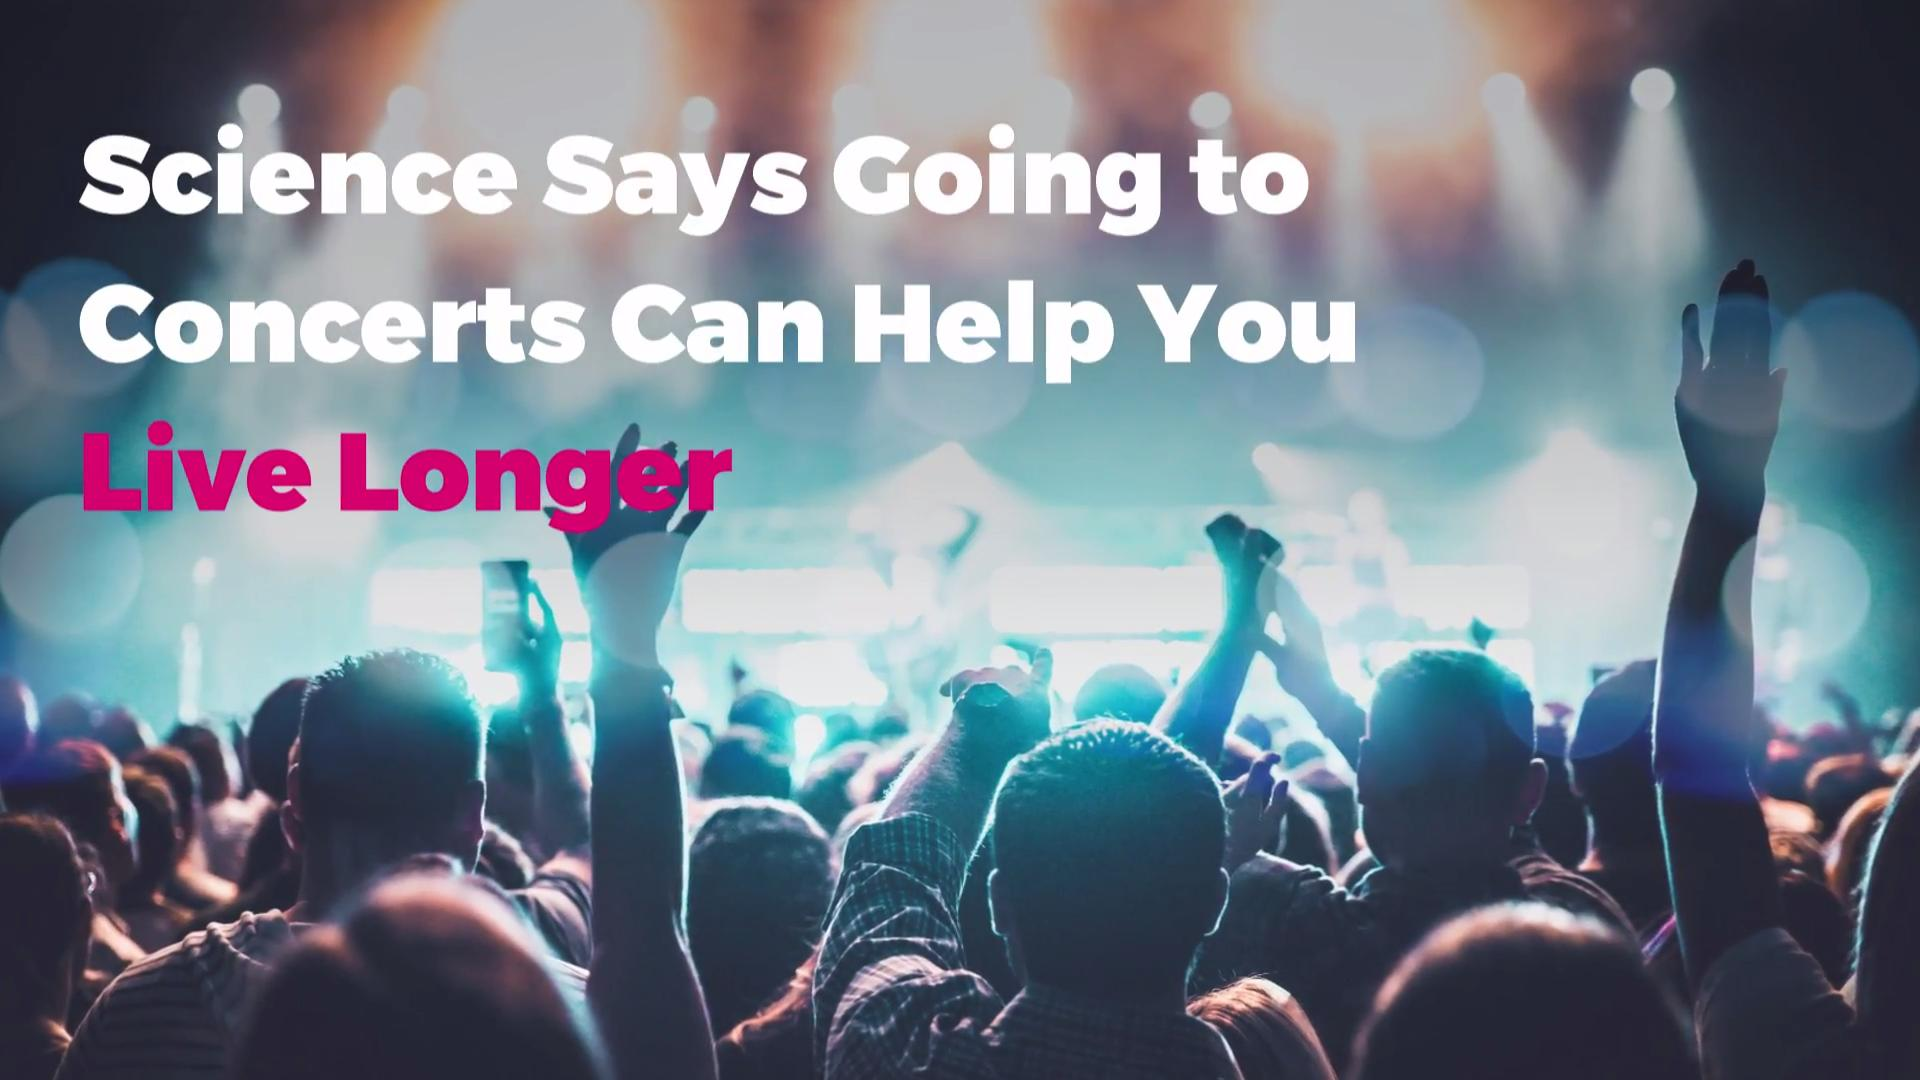 Science Says Going to Concerts Can Help You Live Longer